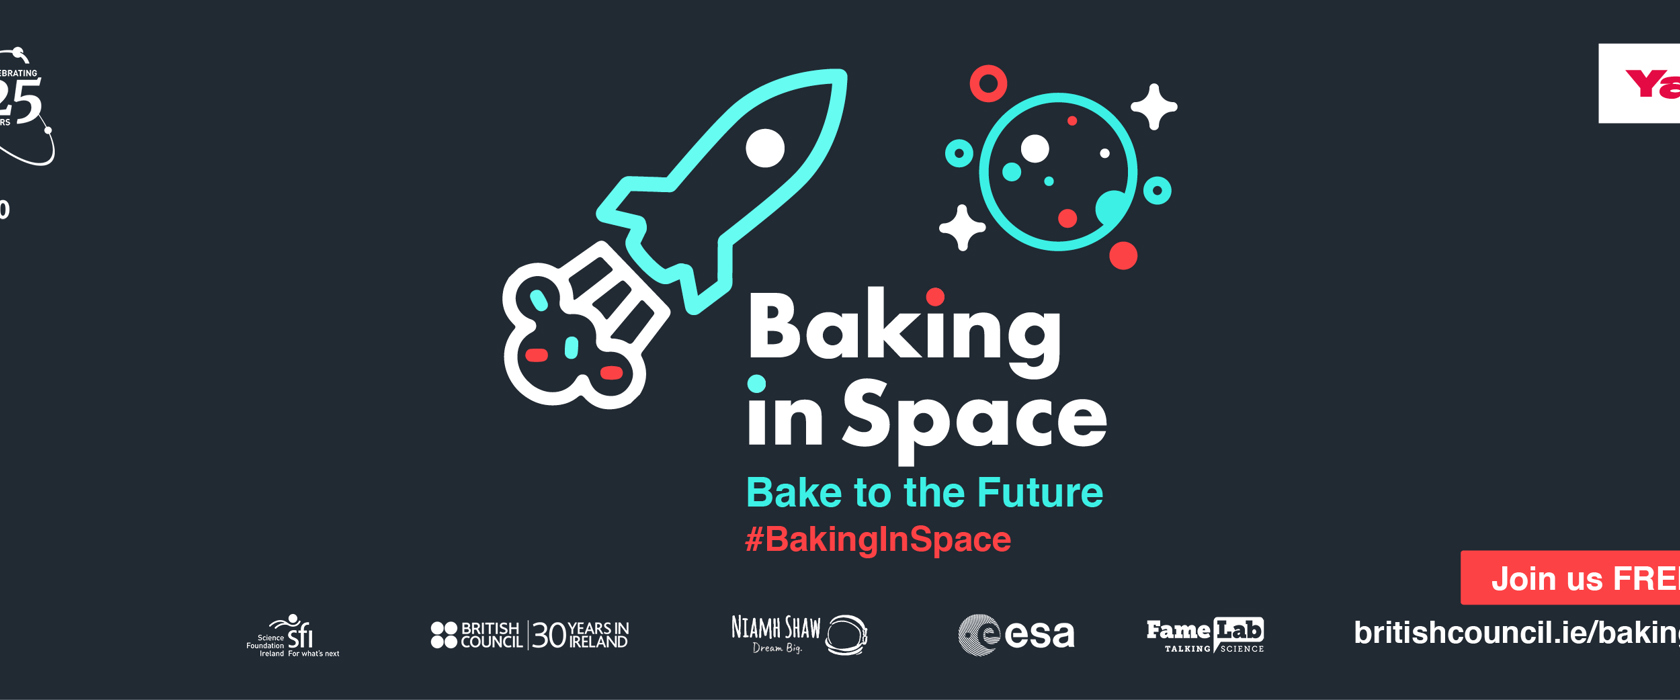 'Baking In Space': In conversation with Andrew Smyth and Dr Niamh Shaw